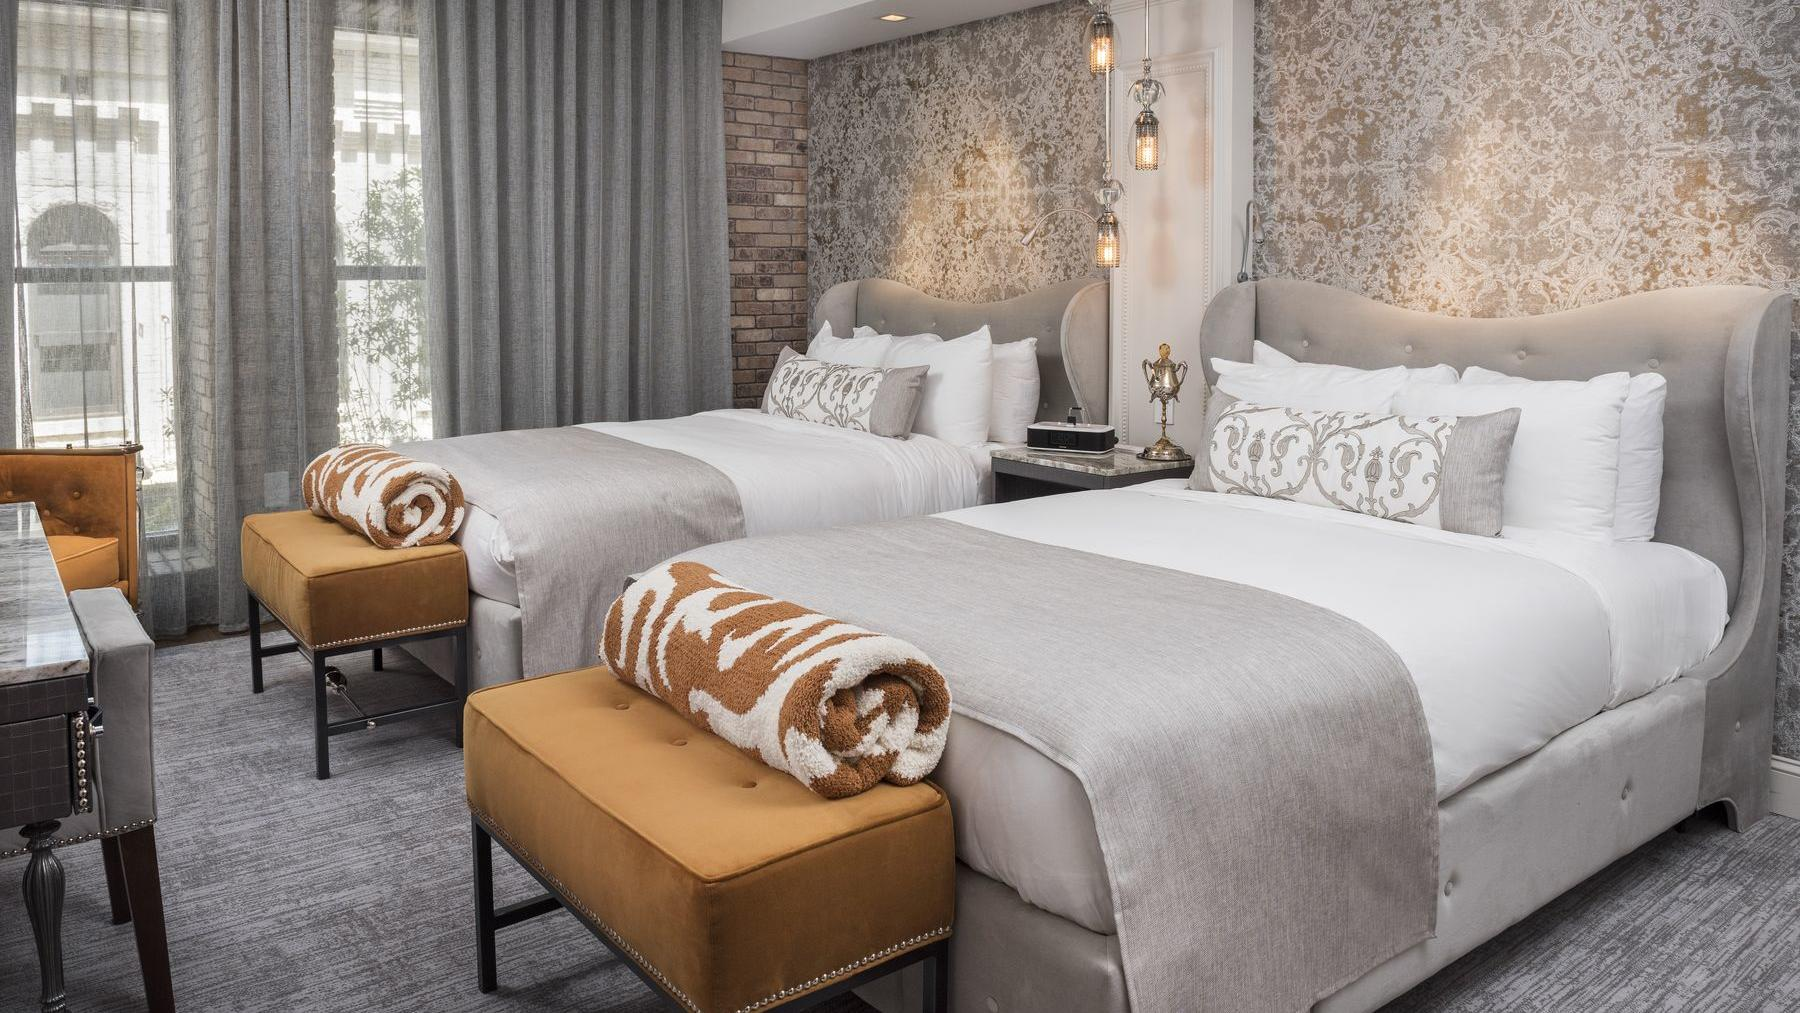 beds in cozy room with carpet and floral headboards